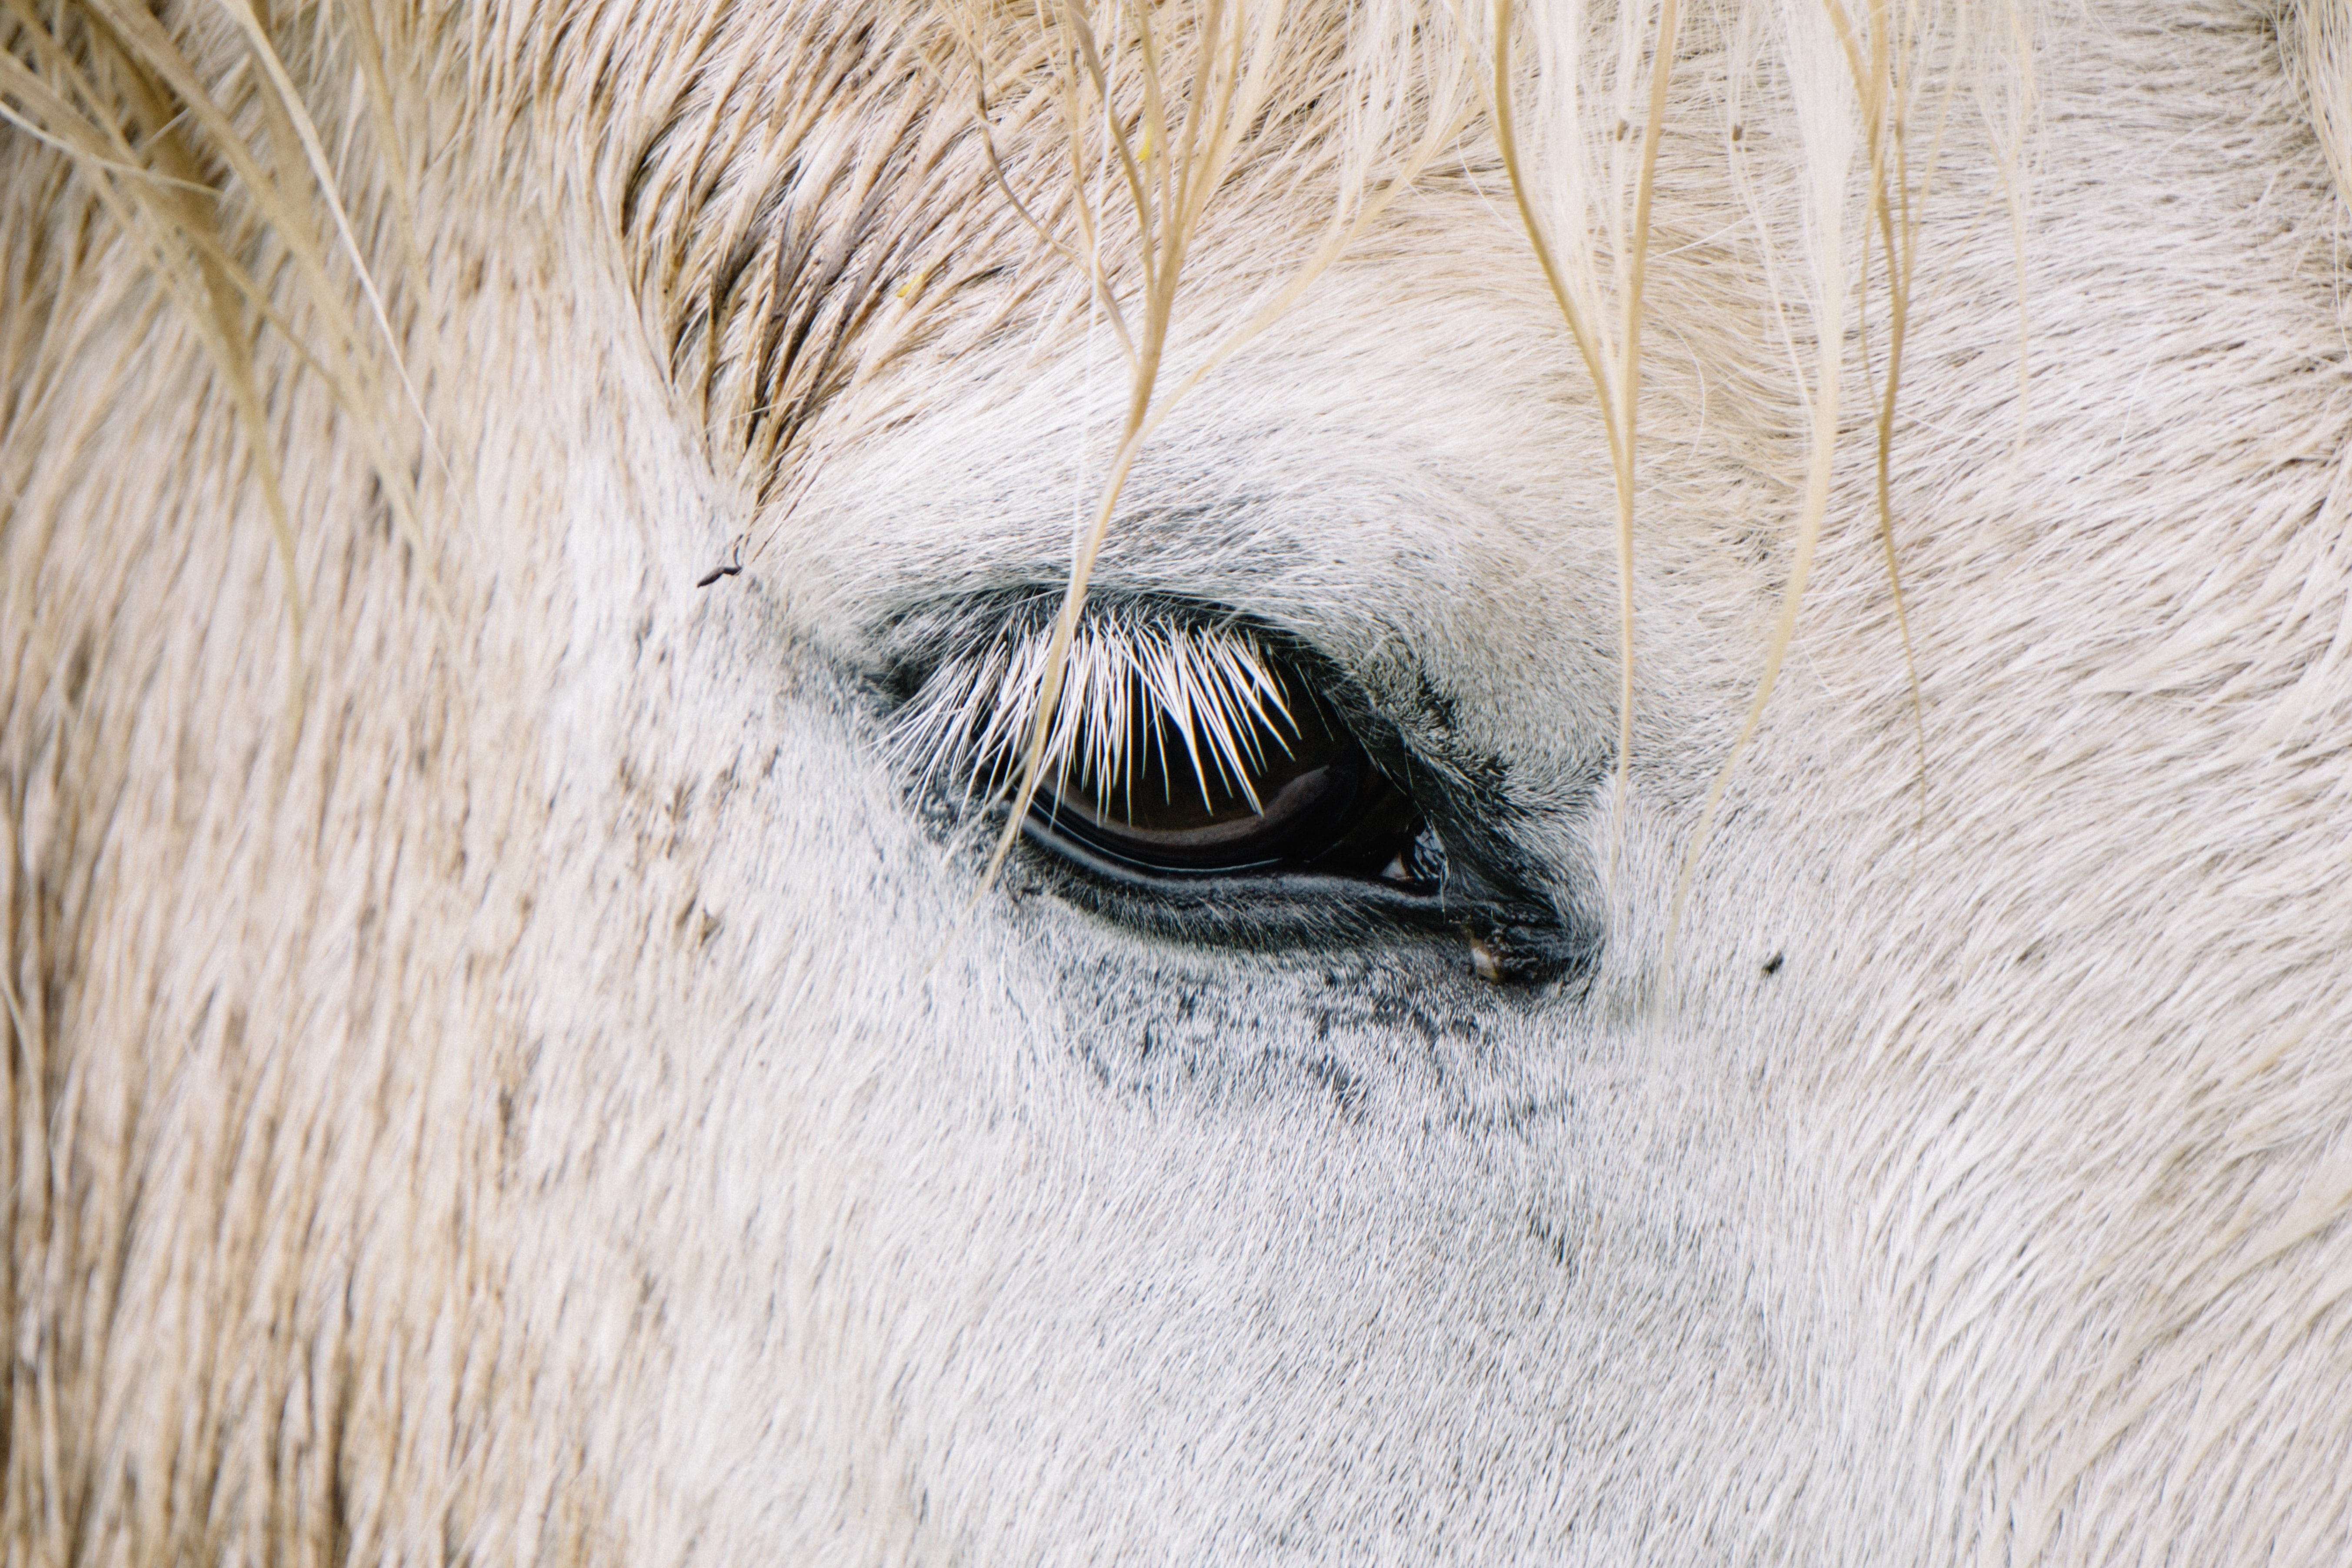 focus photography of horse eye